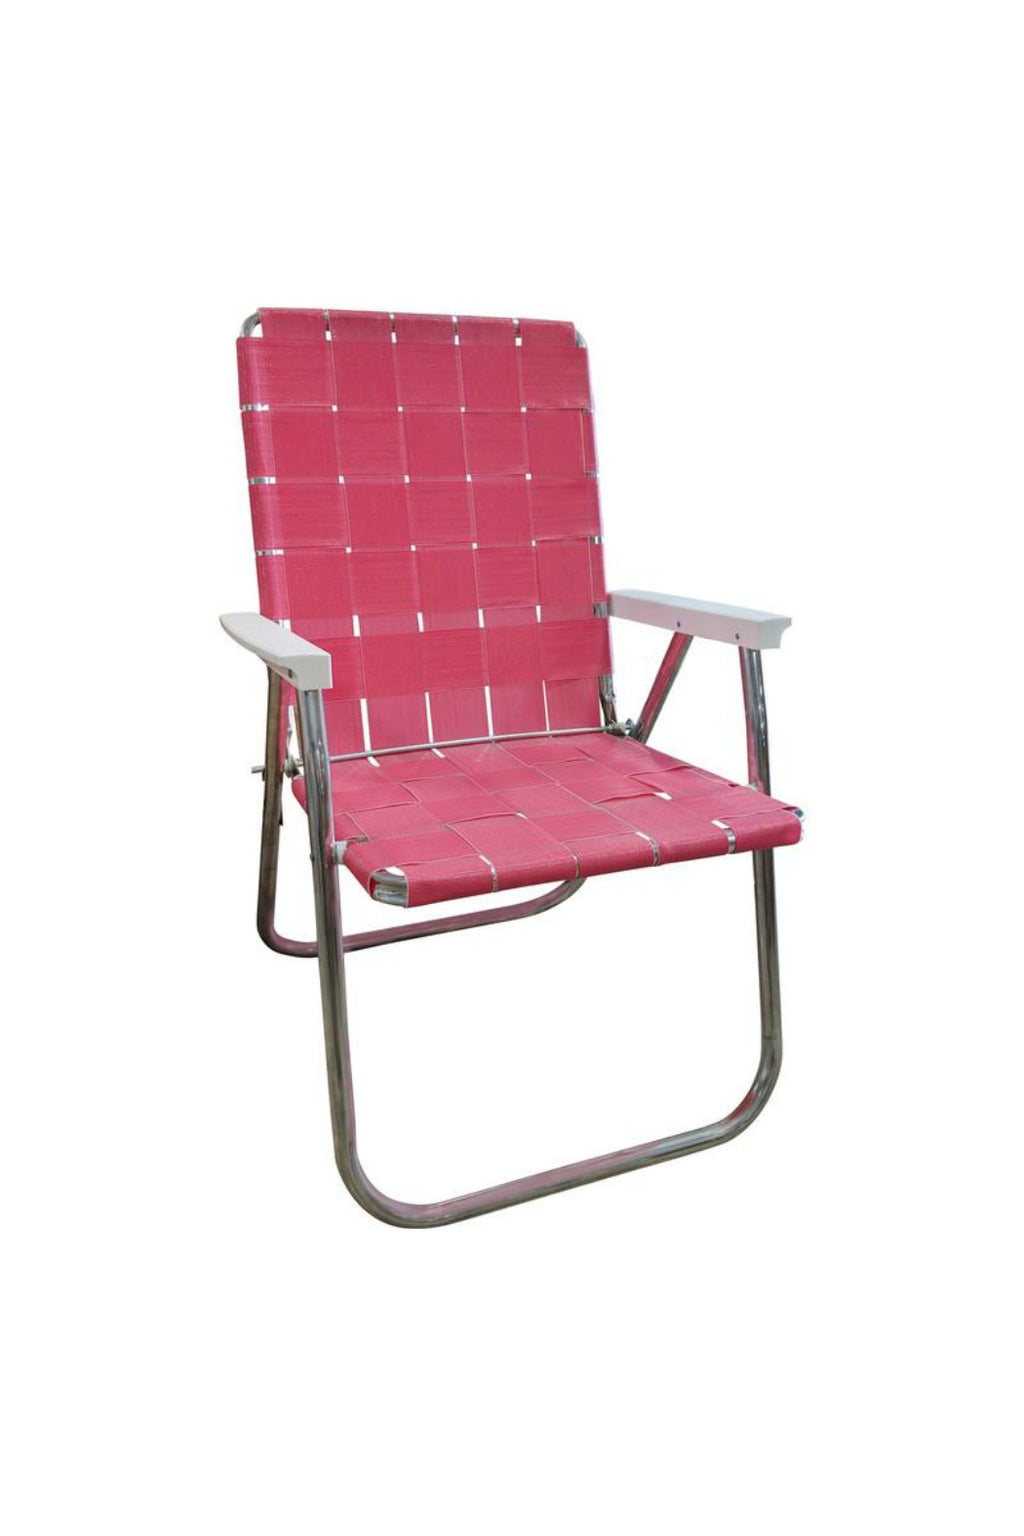 Lawn Chair USA Classic Lawn Chair - Complete Pink